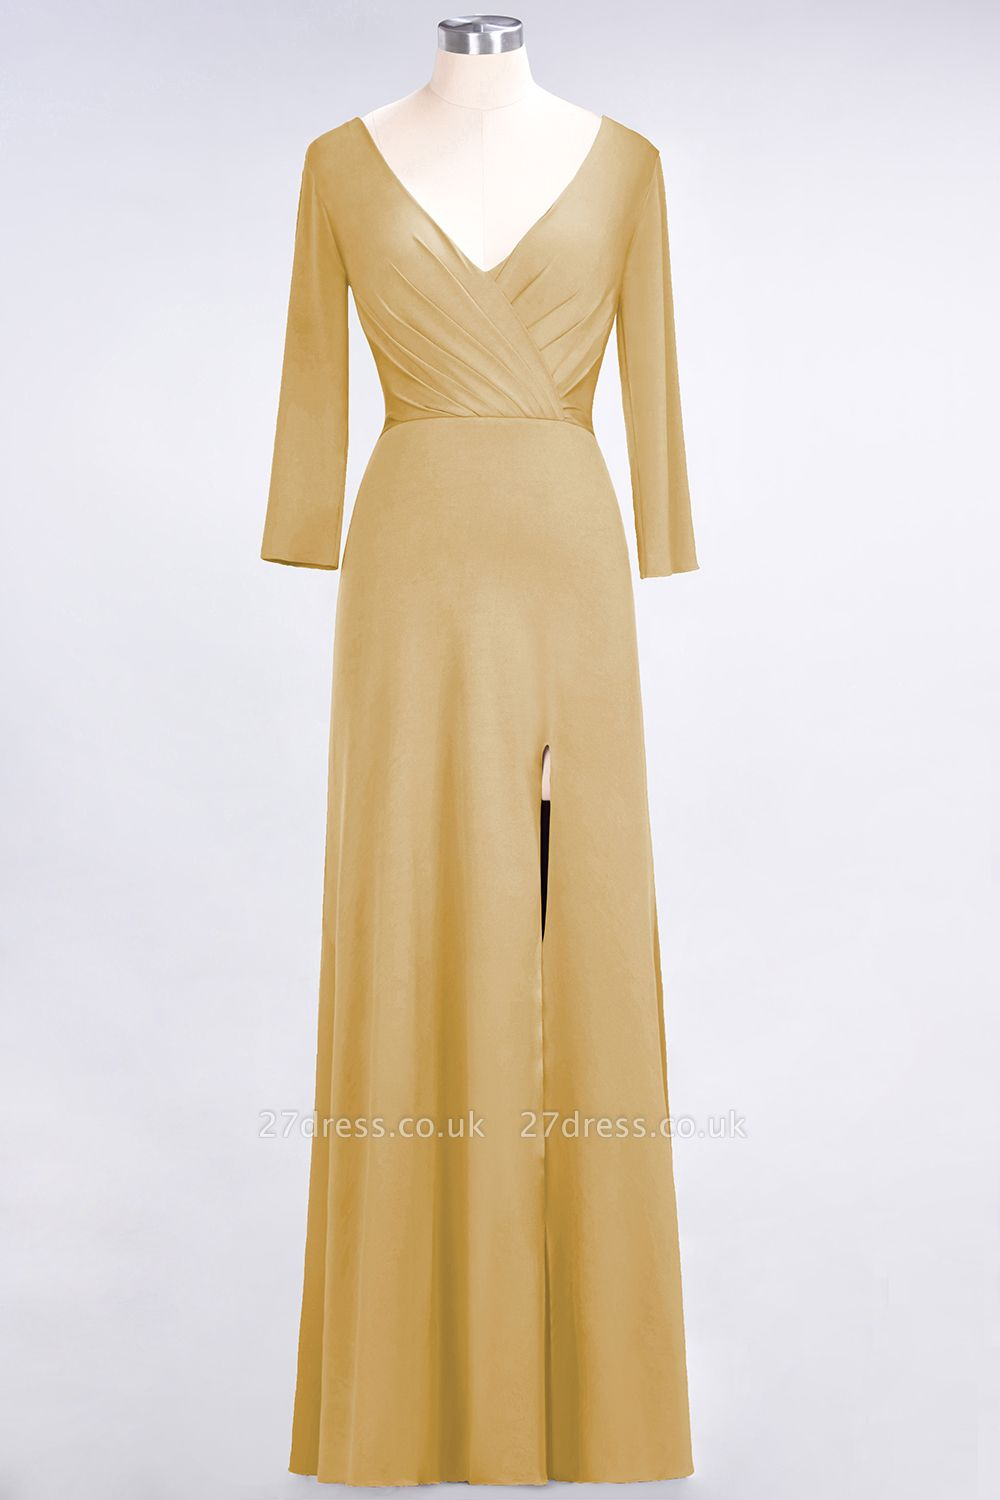 Sexy A-line Spandex Alluring V-neck Long-Sleeves Side-Slit Floor-Length Bridesmaid Dress UK UK with Ruffles